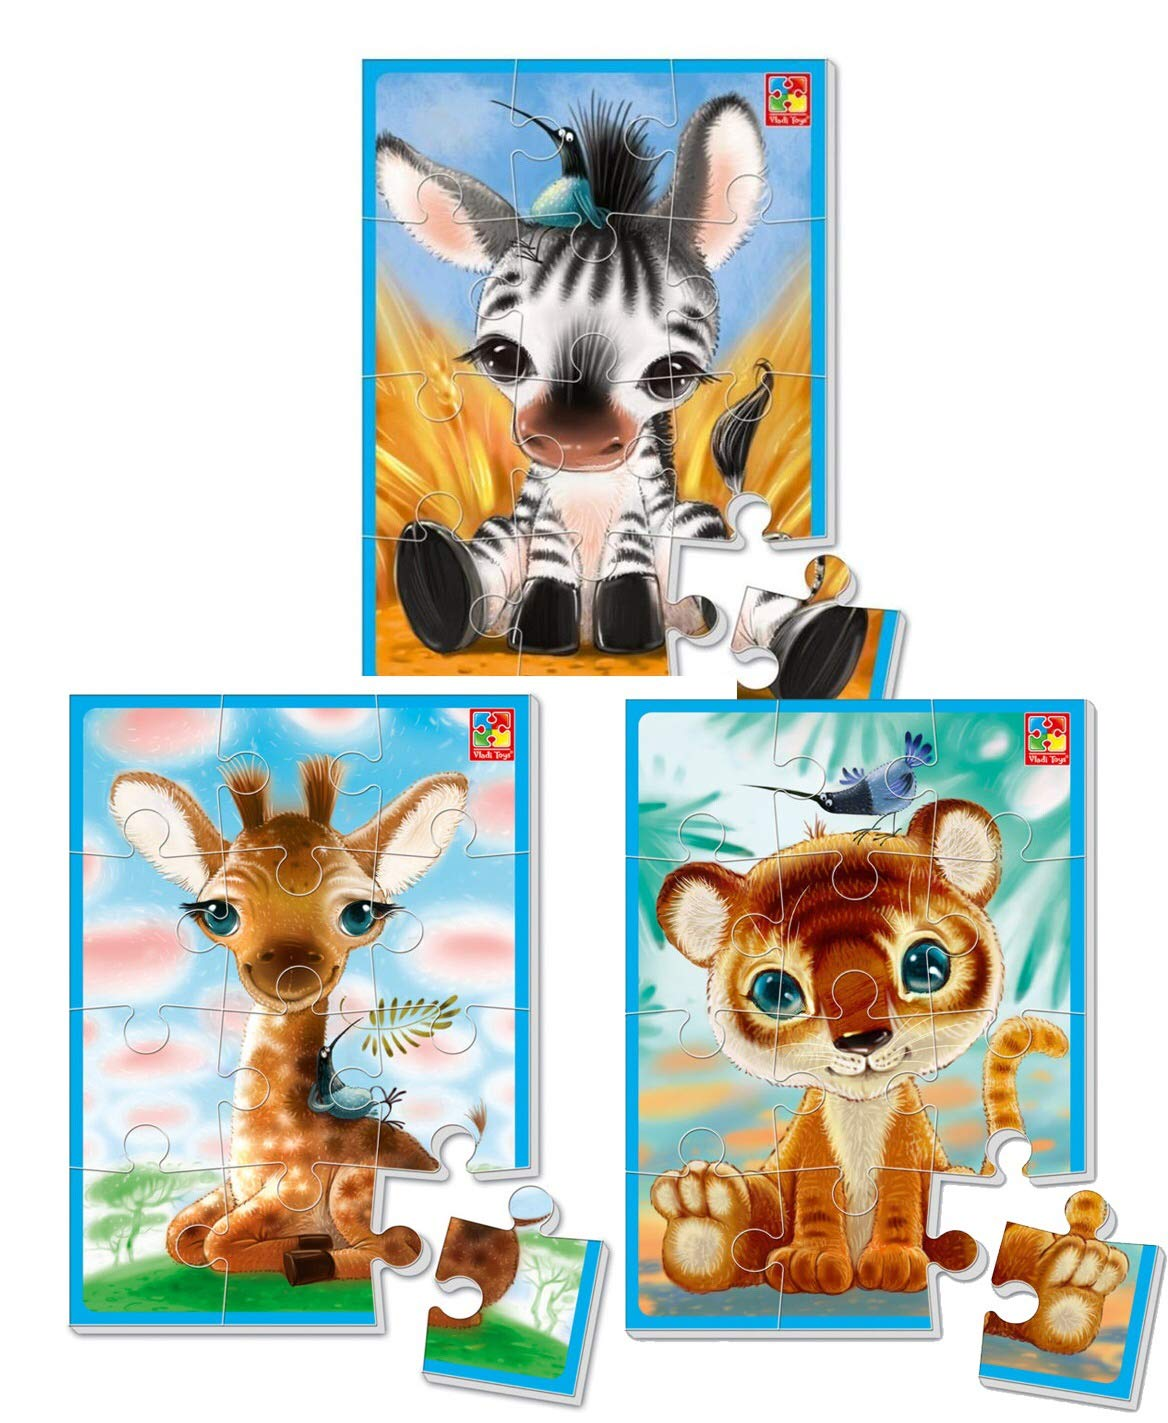 3 psc Soft Puzzle Contains Heroes Items Animals Toys Children Mosaic Development Vladi Toys 9.4 inch